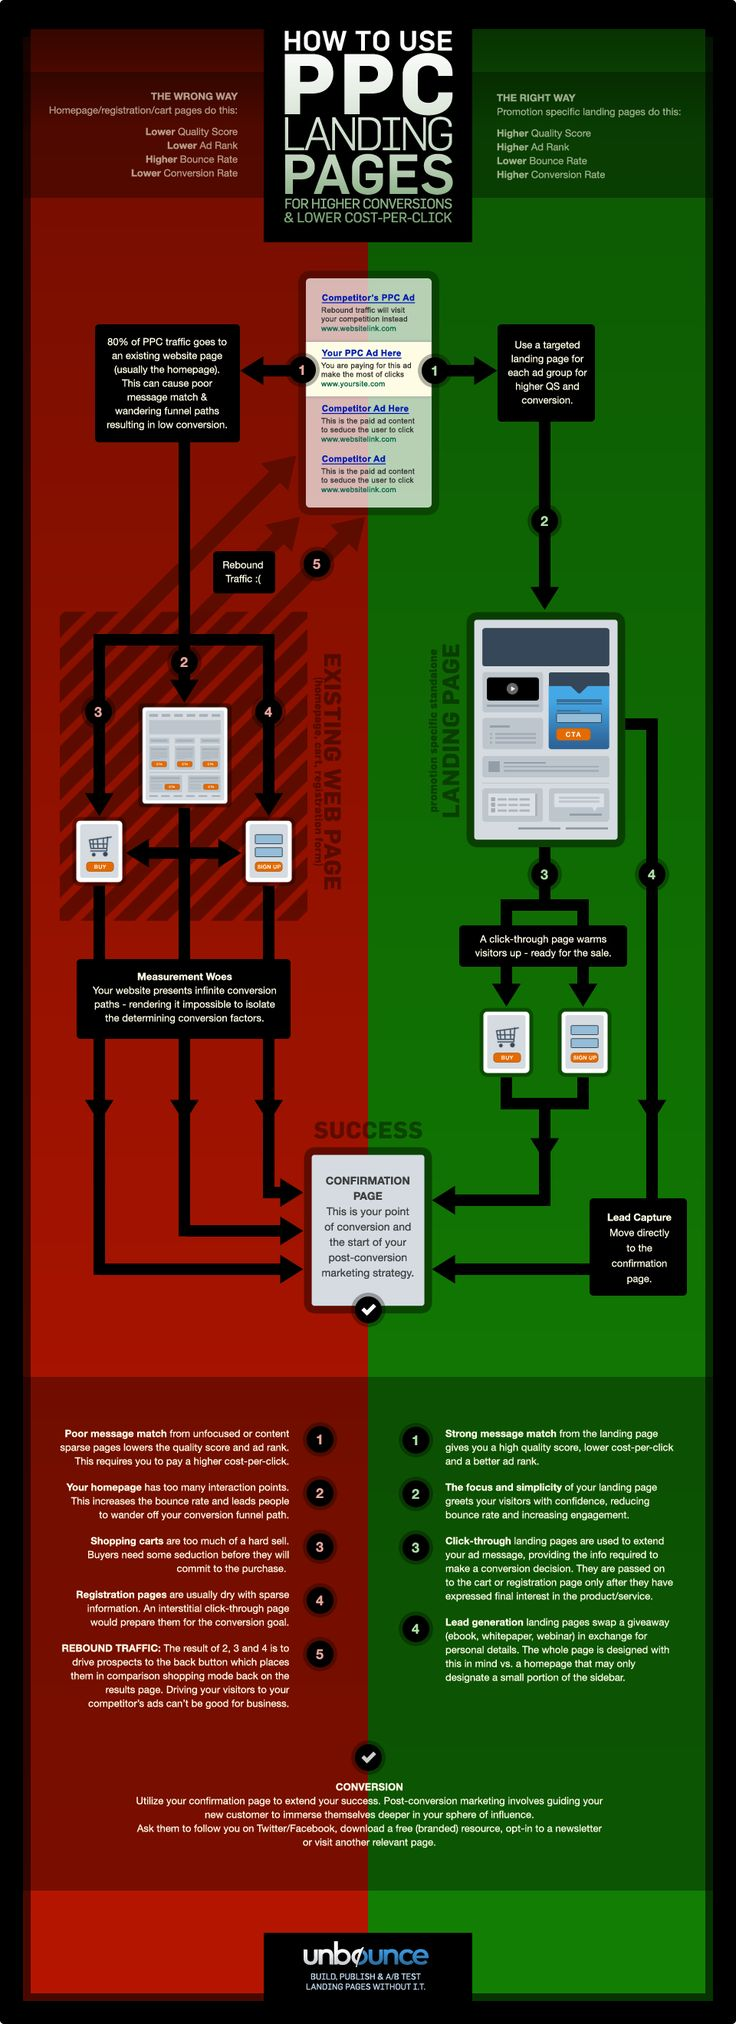 [Infographic] How to use PPC Landing Pages for Higher Conversions